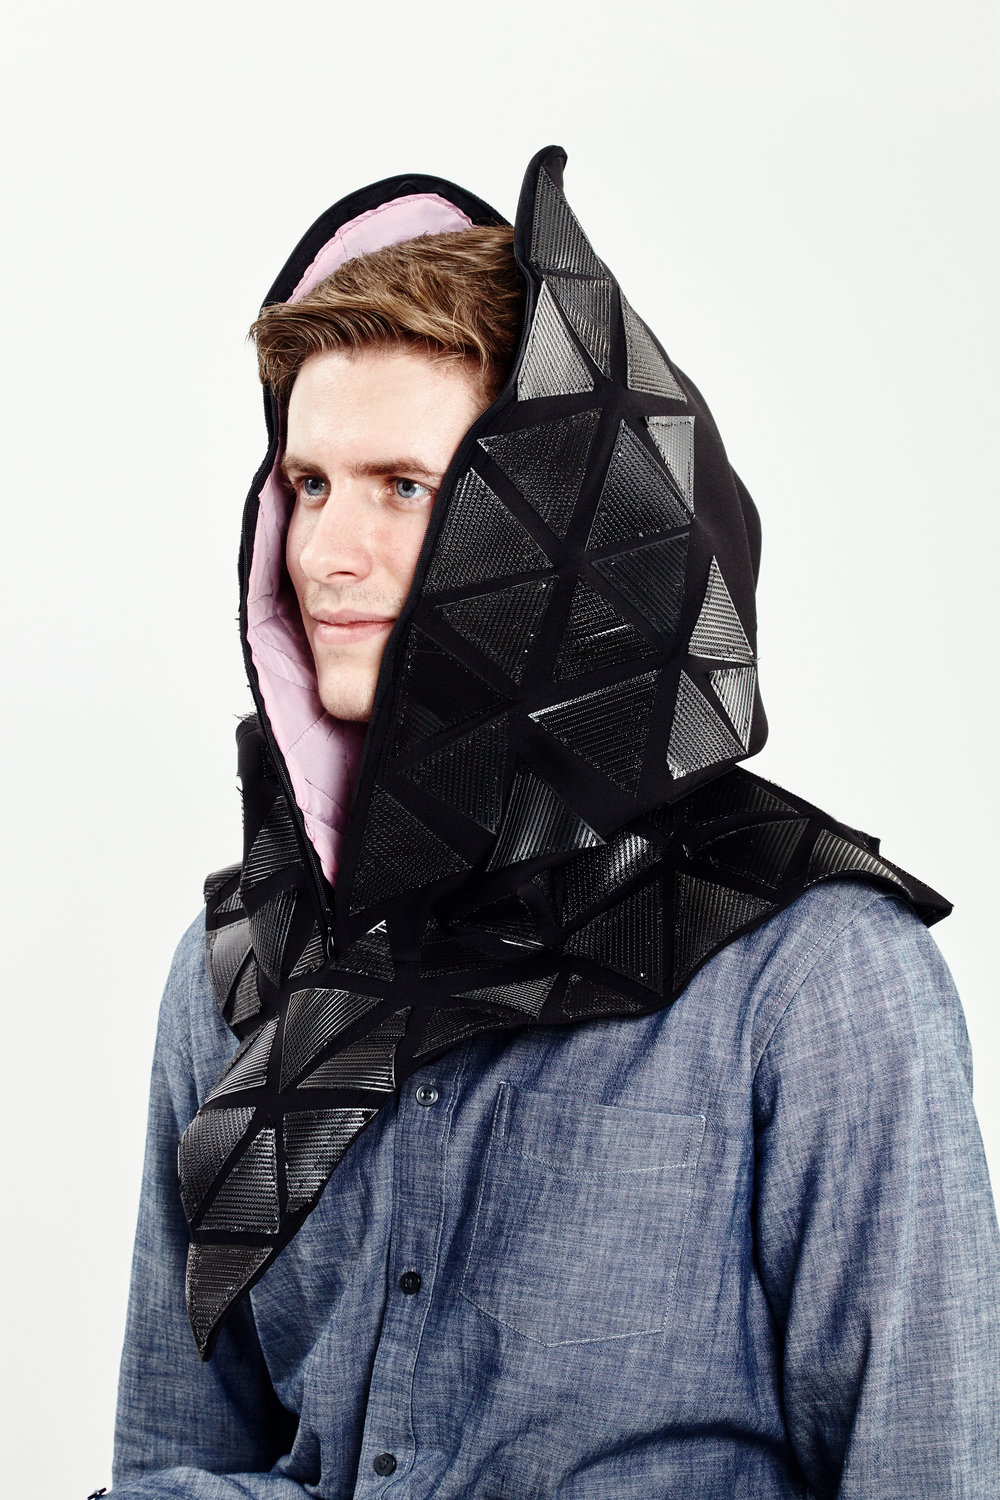 It addresses the current social norm of being constantly connected to technology. The garment is designed with neoprene fabric that insulates and protects the wearer from the outside world, and a mylar cell phone pocket that blocks cell signals.